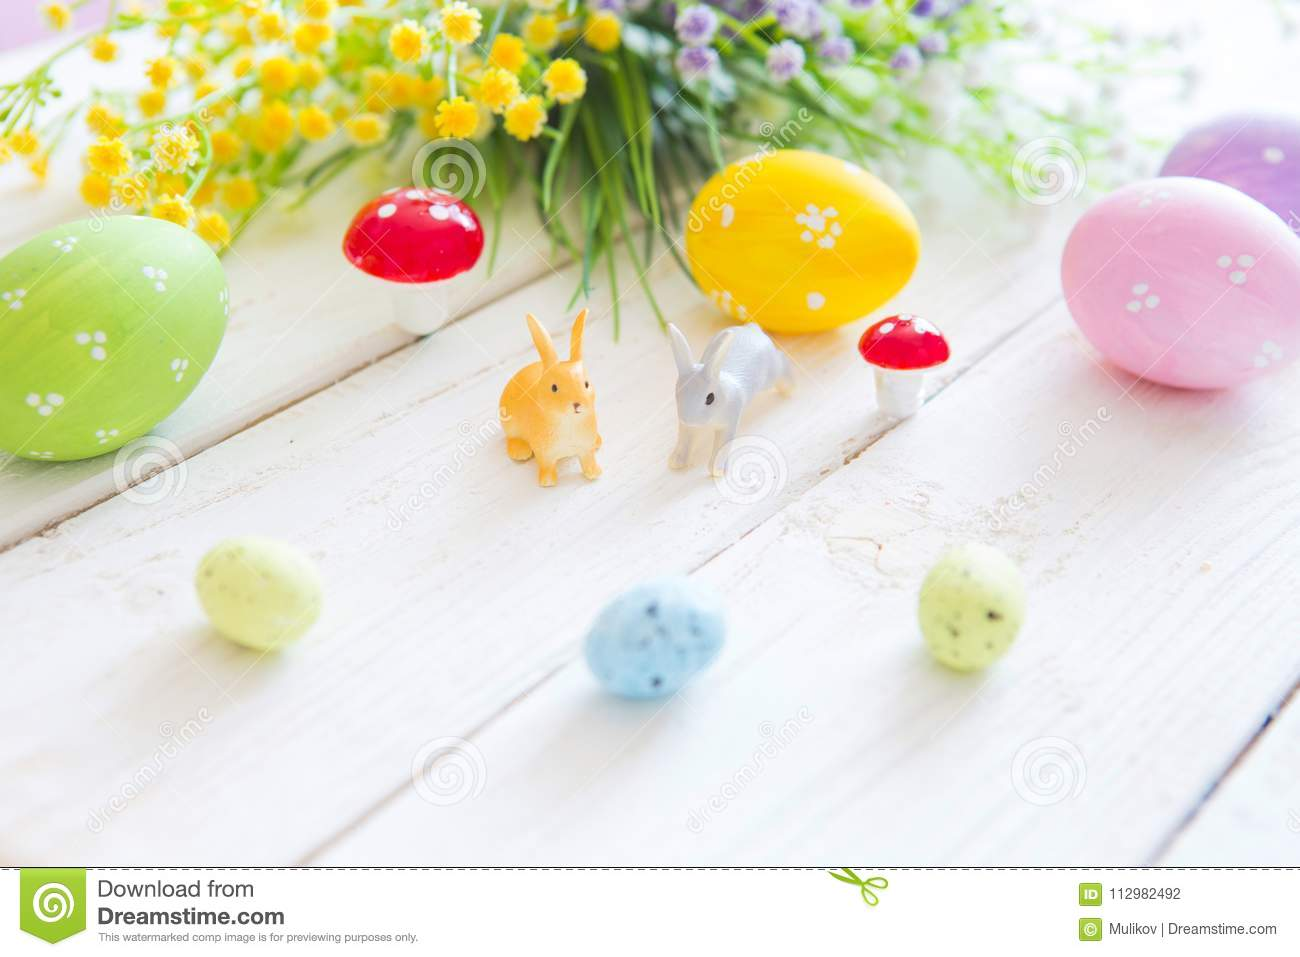 Happy Easter concept. Easter greeting card with flowers, easter rabbits bunny toys and eggs on white wooden plank